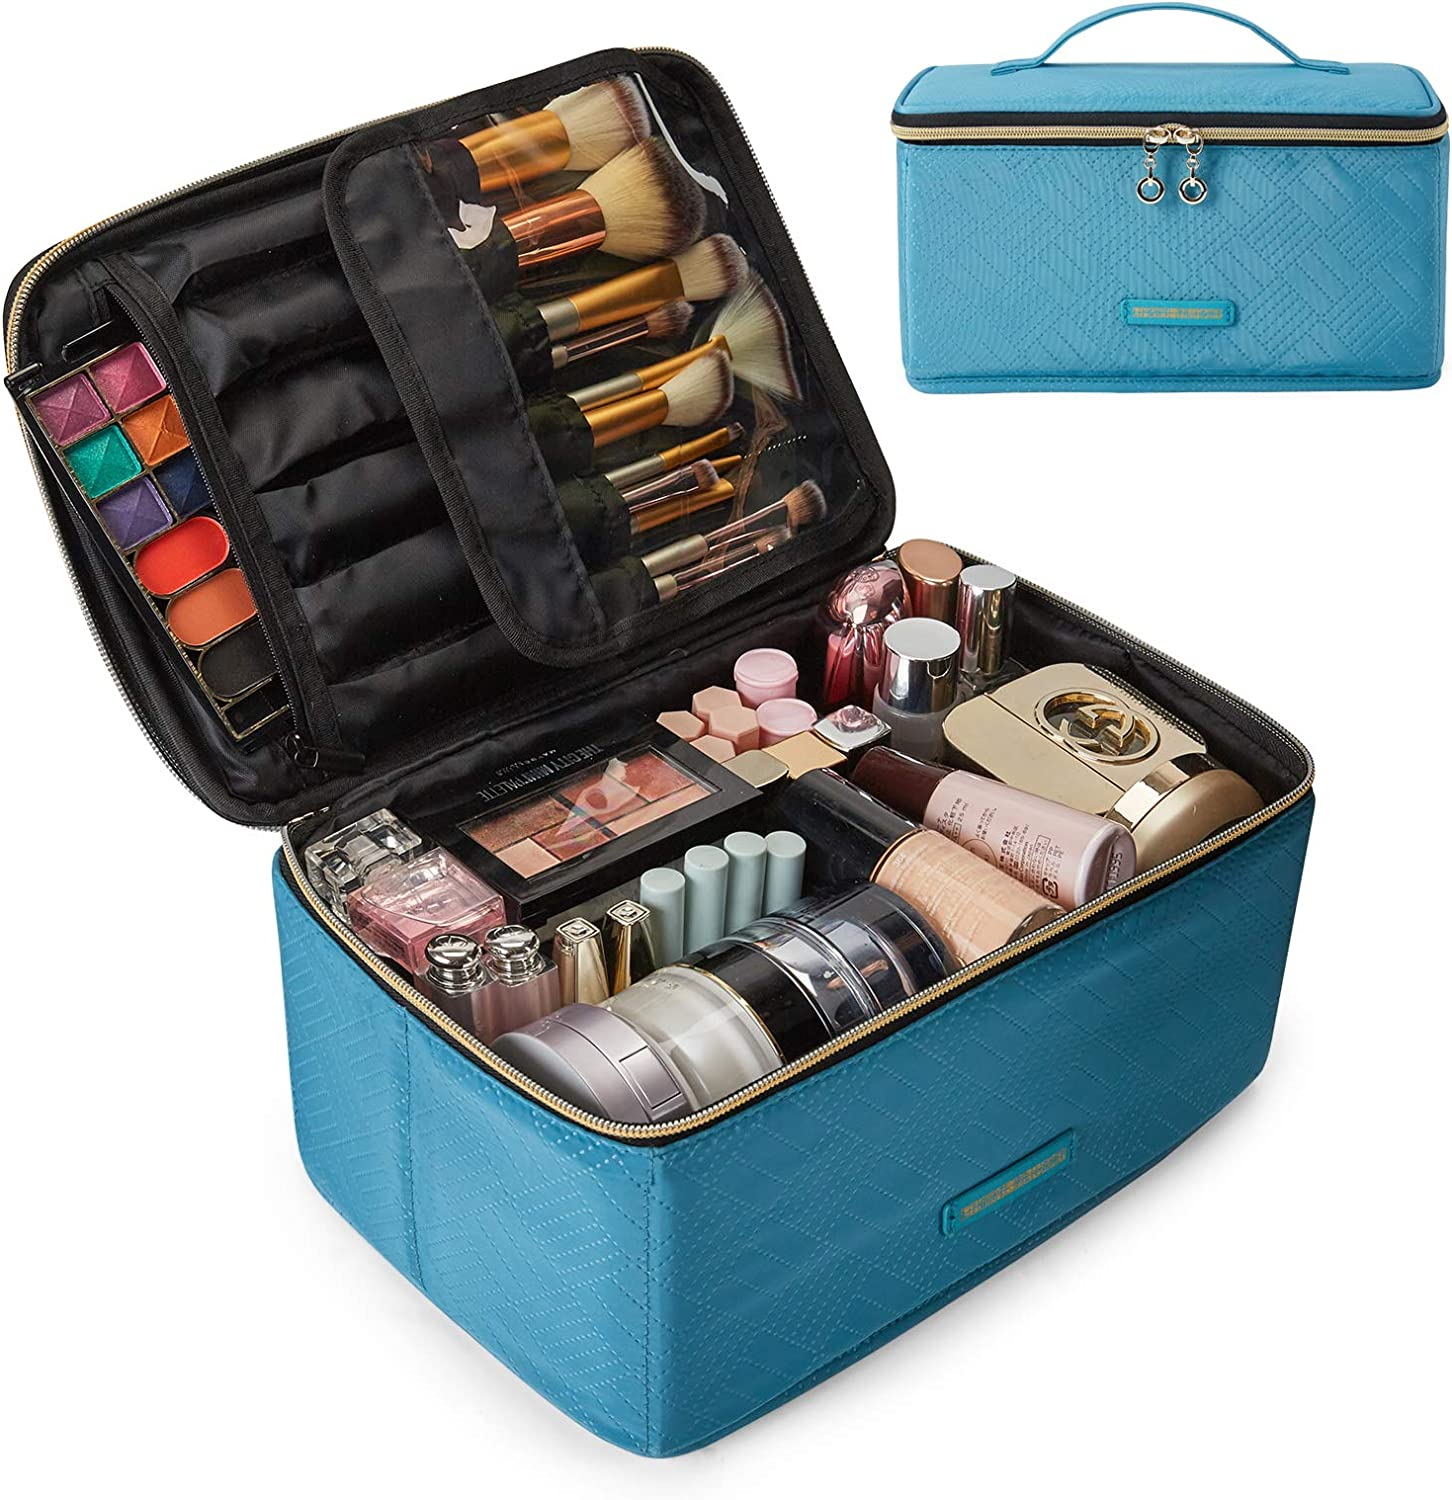 LIGHT FLIGHT Travel Makeup Bag Large Cosmetic Bag for Women Makeup Case Organizer with Adjustable Dividers for Cosmetics Make Up